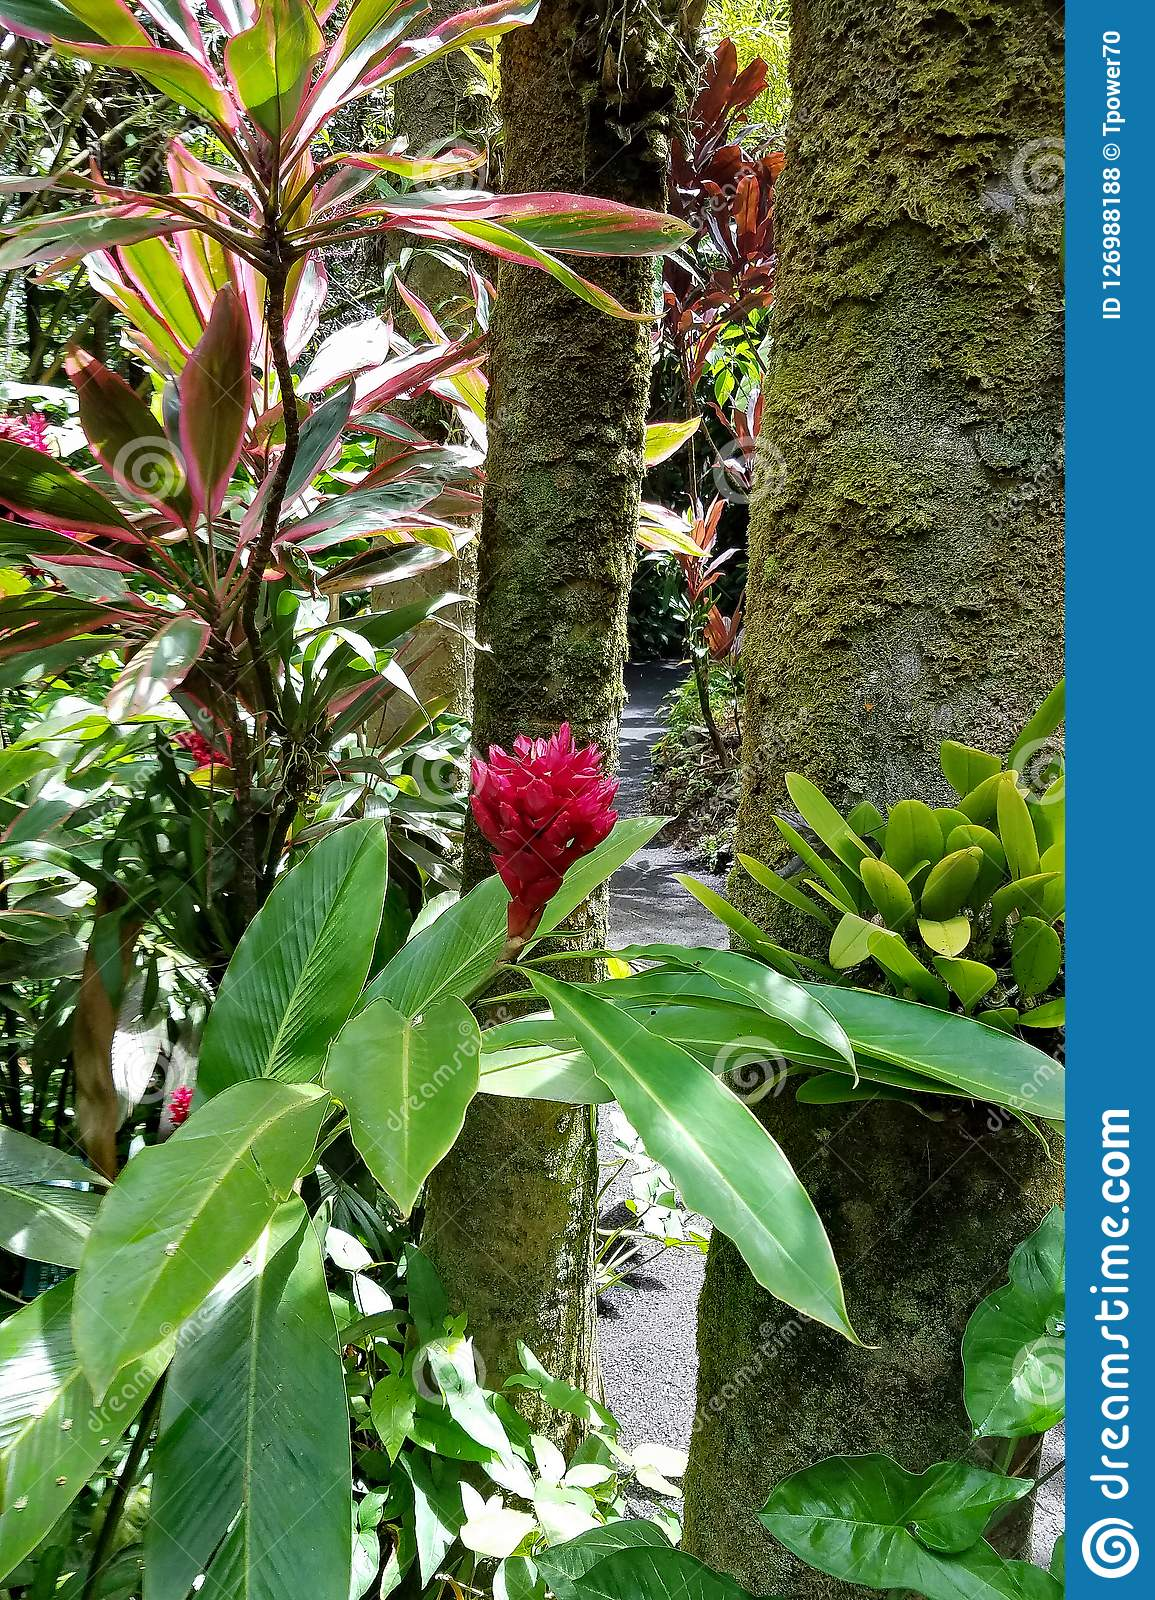 Red Wax Ginger Plant and Tall Trees